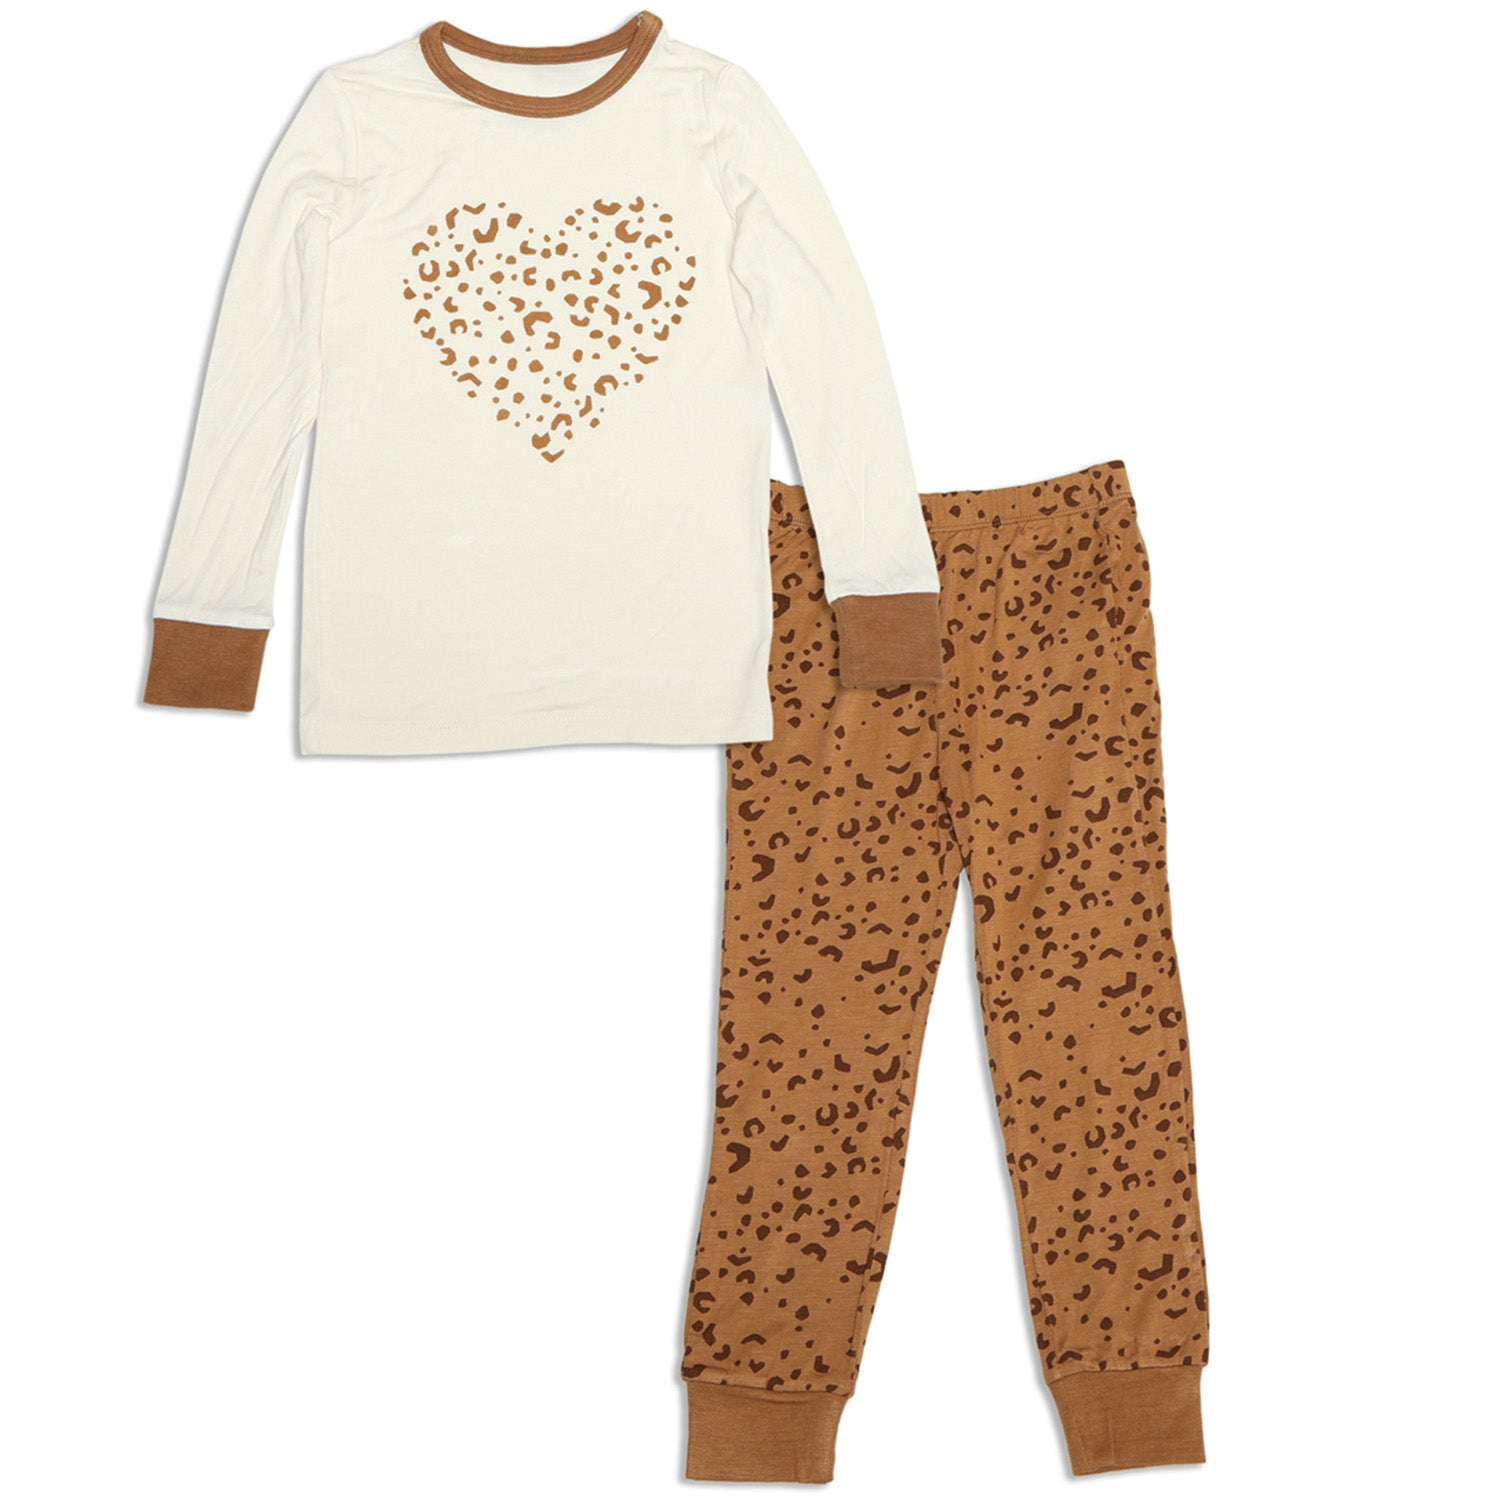 Silkberry Baby Bamboo Long Sleeve Pajama Set - Geometric Leopard